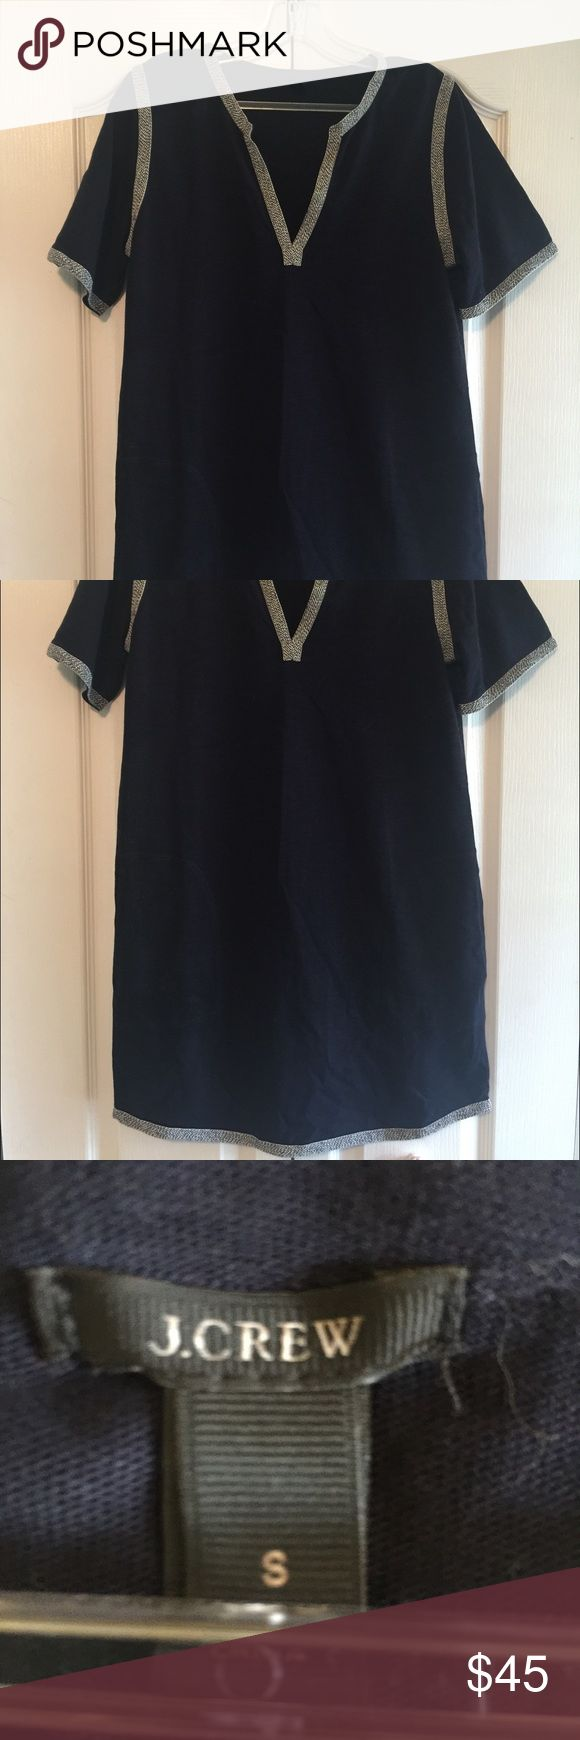 JCrew Navy Mini dress This super cute navy mini dress is not only very comfortable, but also has pockets. No signs of wear, pulling, or stains. J. Crew Dresses Mini